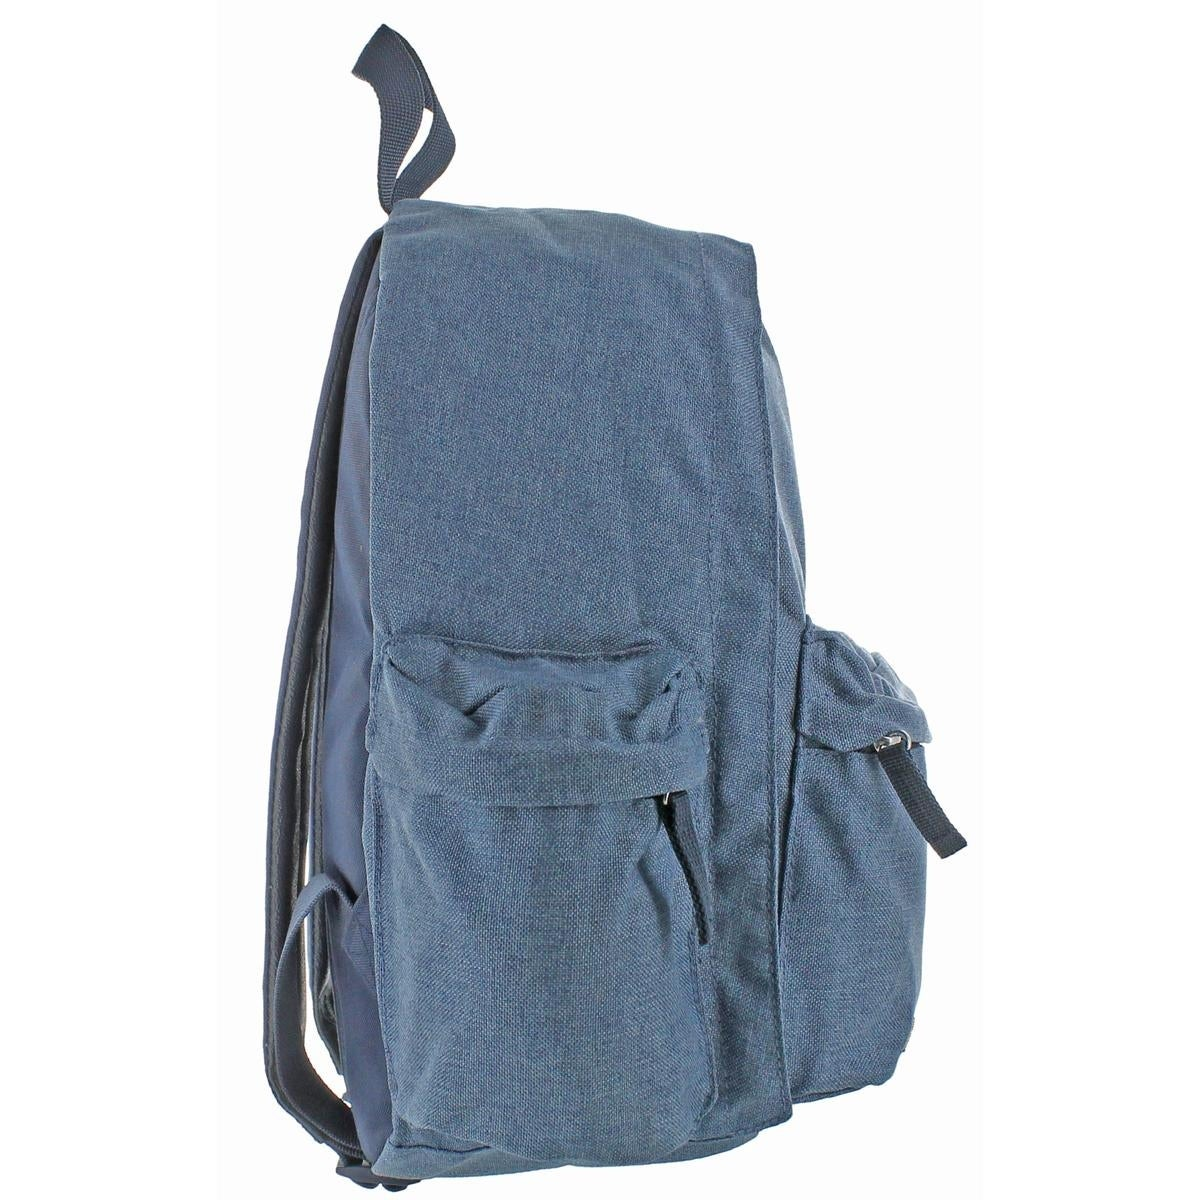 d23e358e84 Shop Polo Ralph Lauren Large Pony Kid s Backpack Kids Canvas - Free  Shipping On Orders Over  45 - Overstock - 21723749